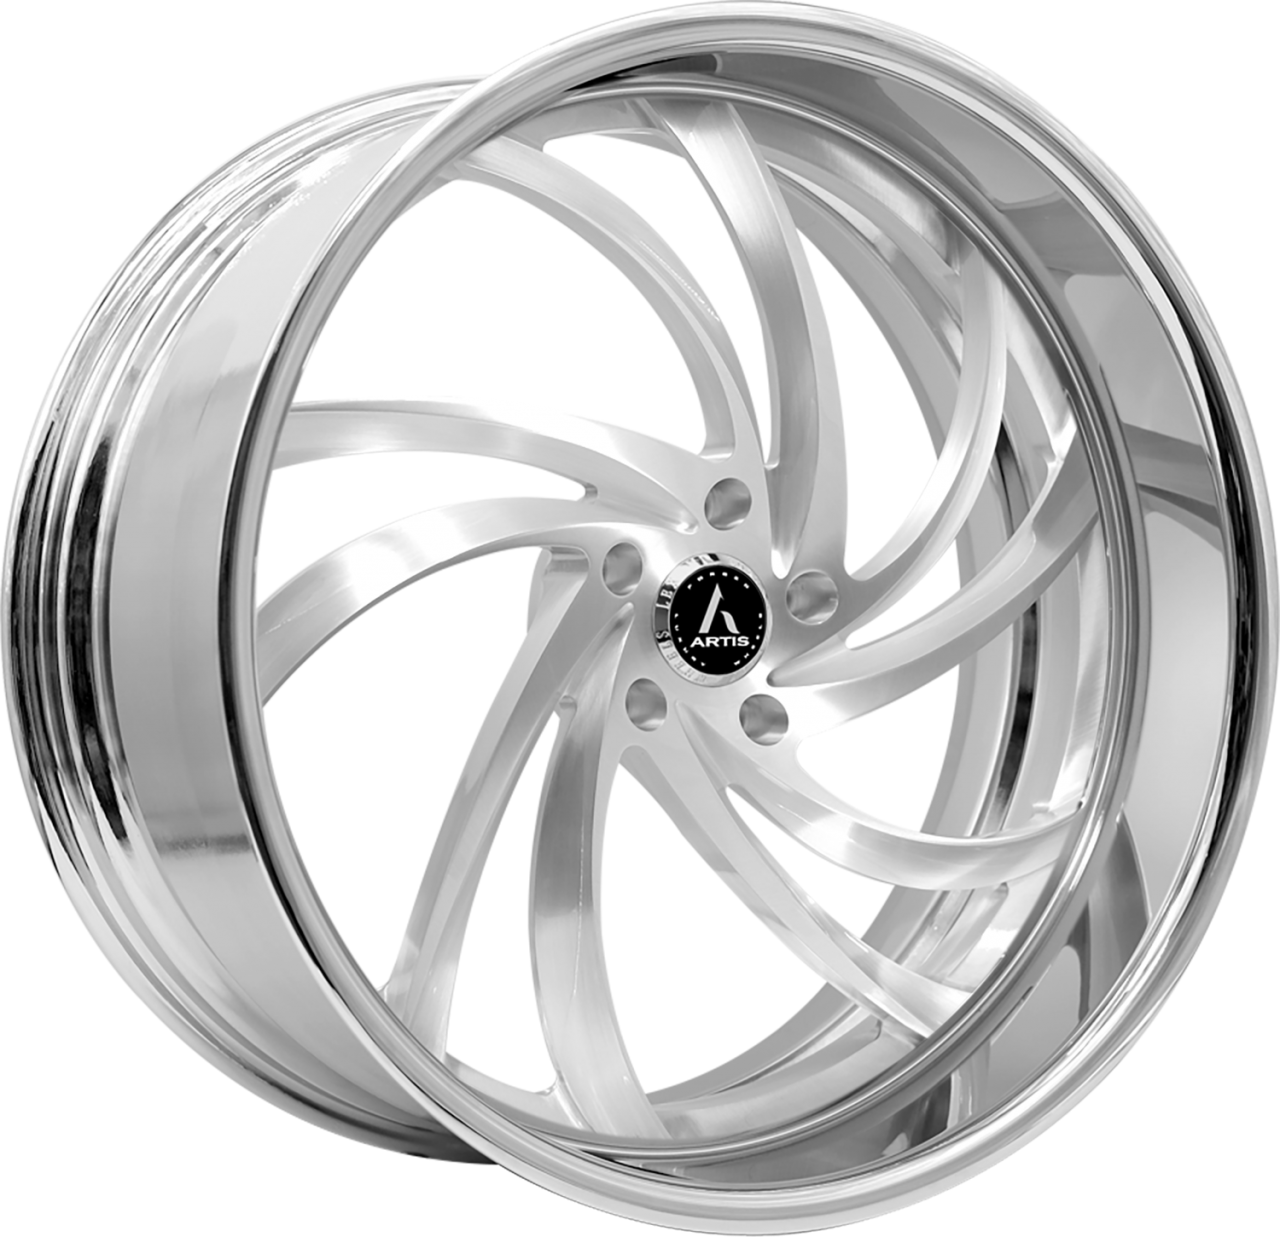 Artis Forged Twister-M wheel with Brushed finish